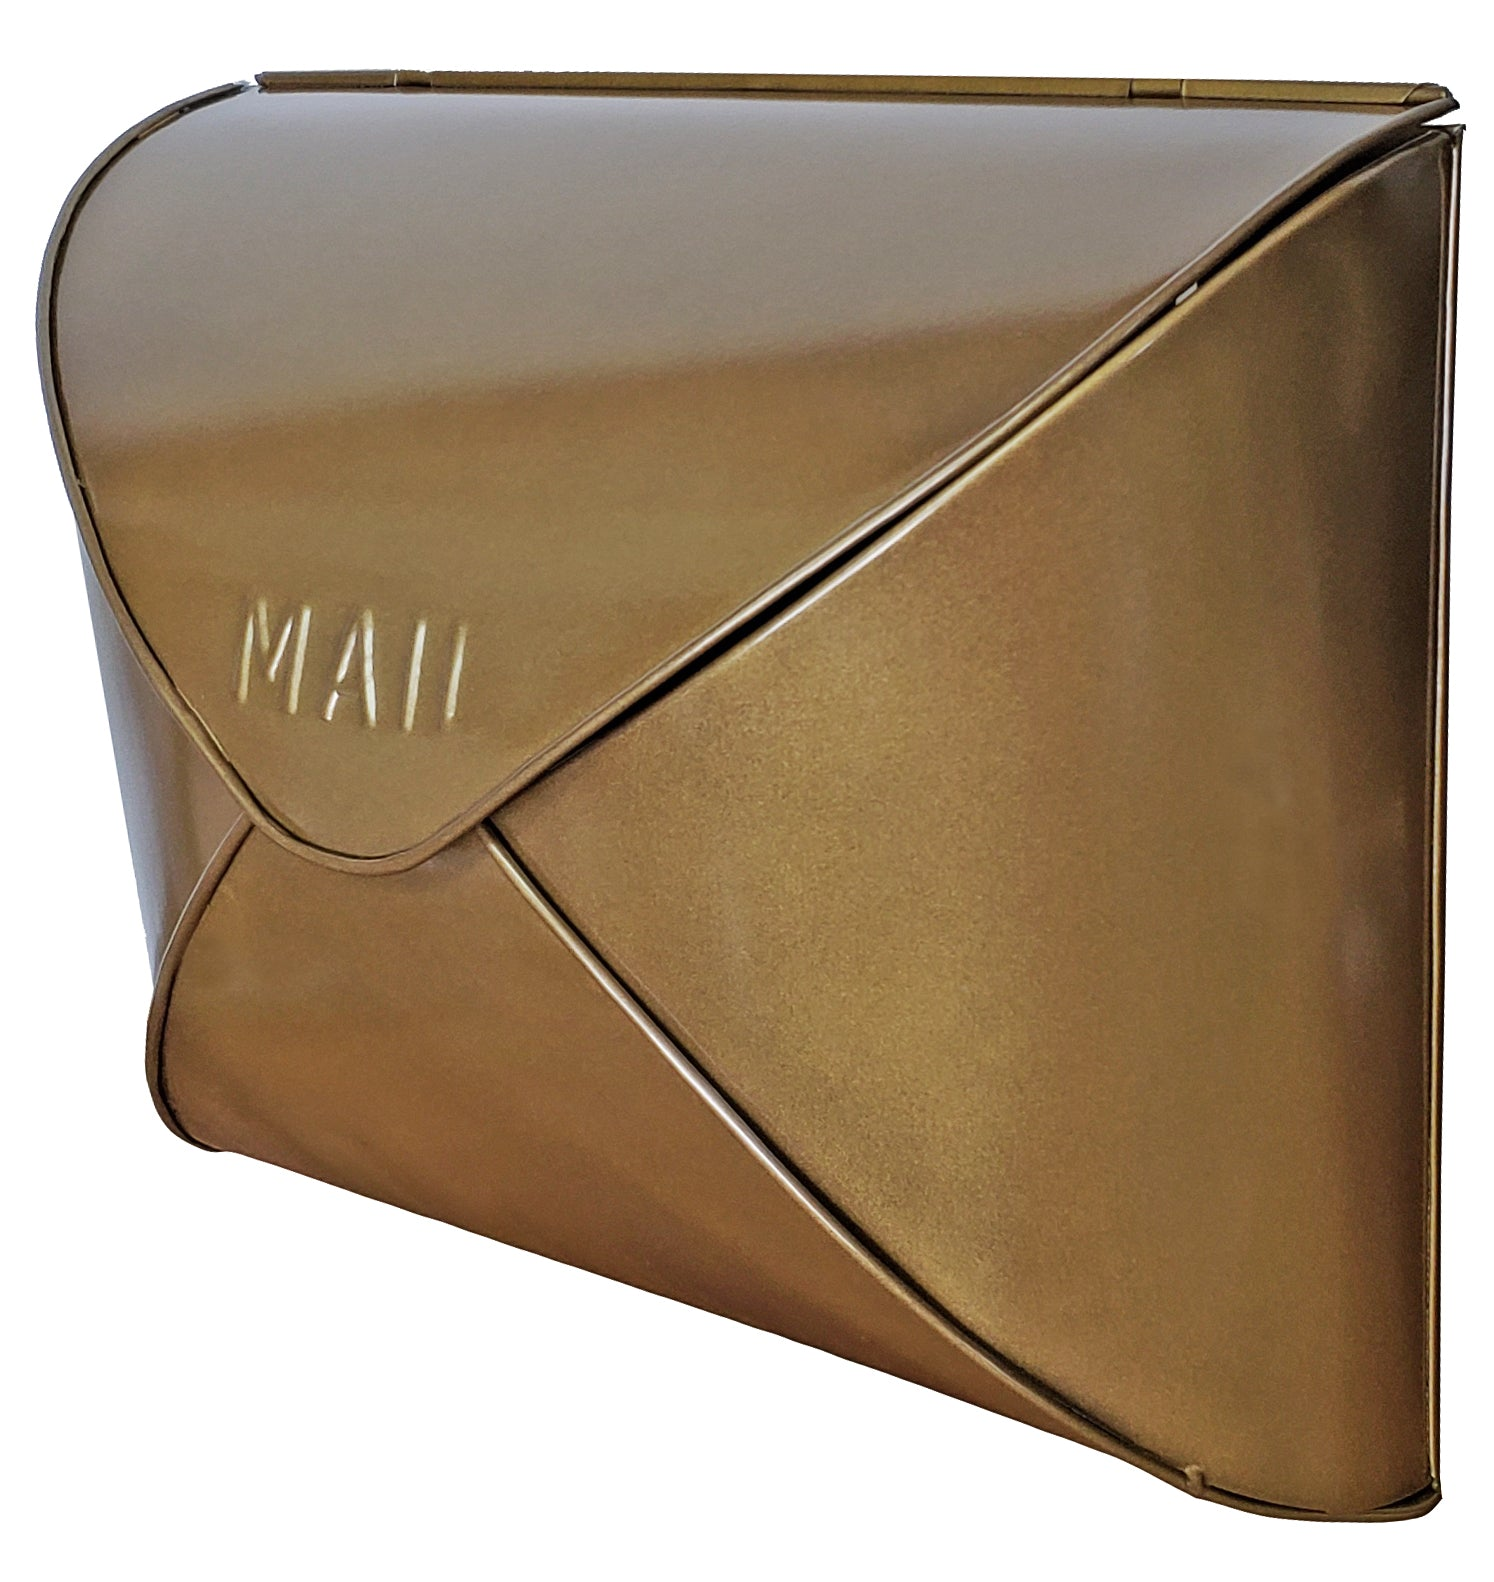 Antique Brass Envelope Mailbox 12 5x5x10 Inches My Country Home And Garden